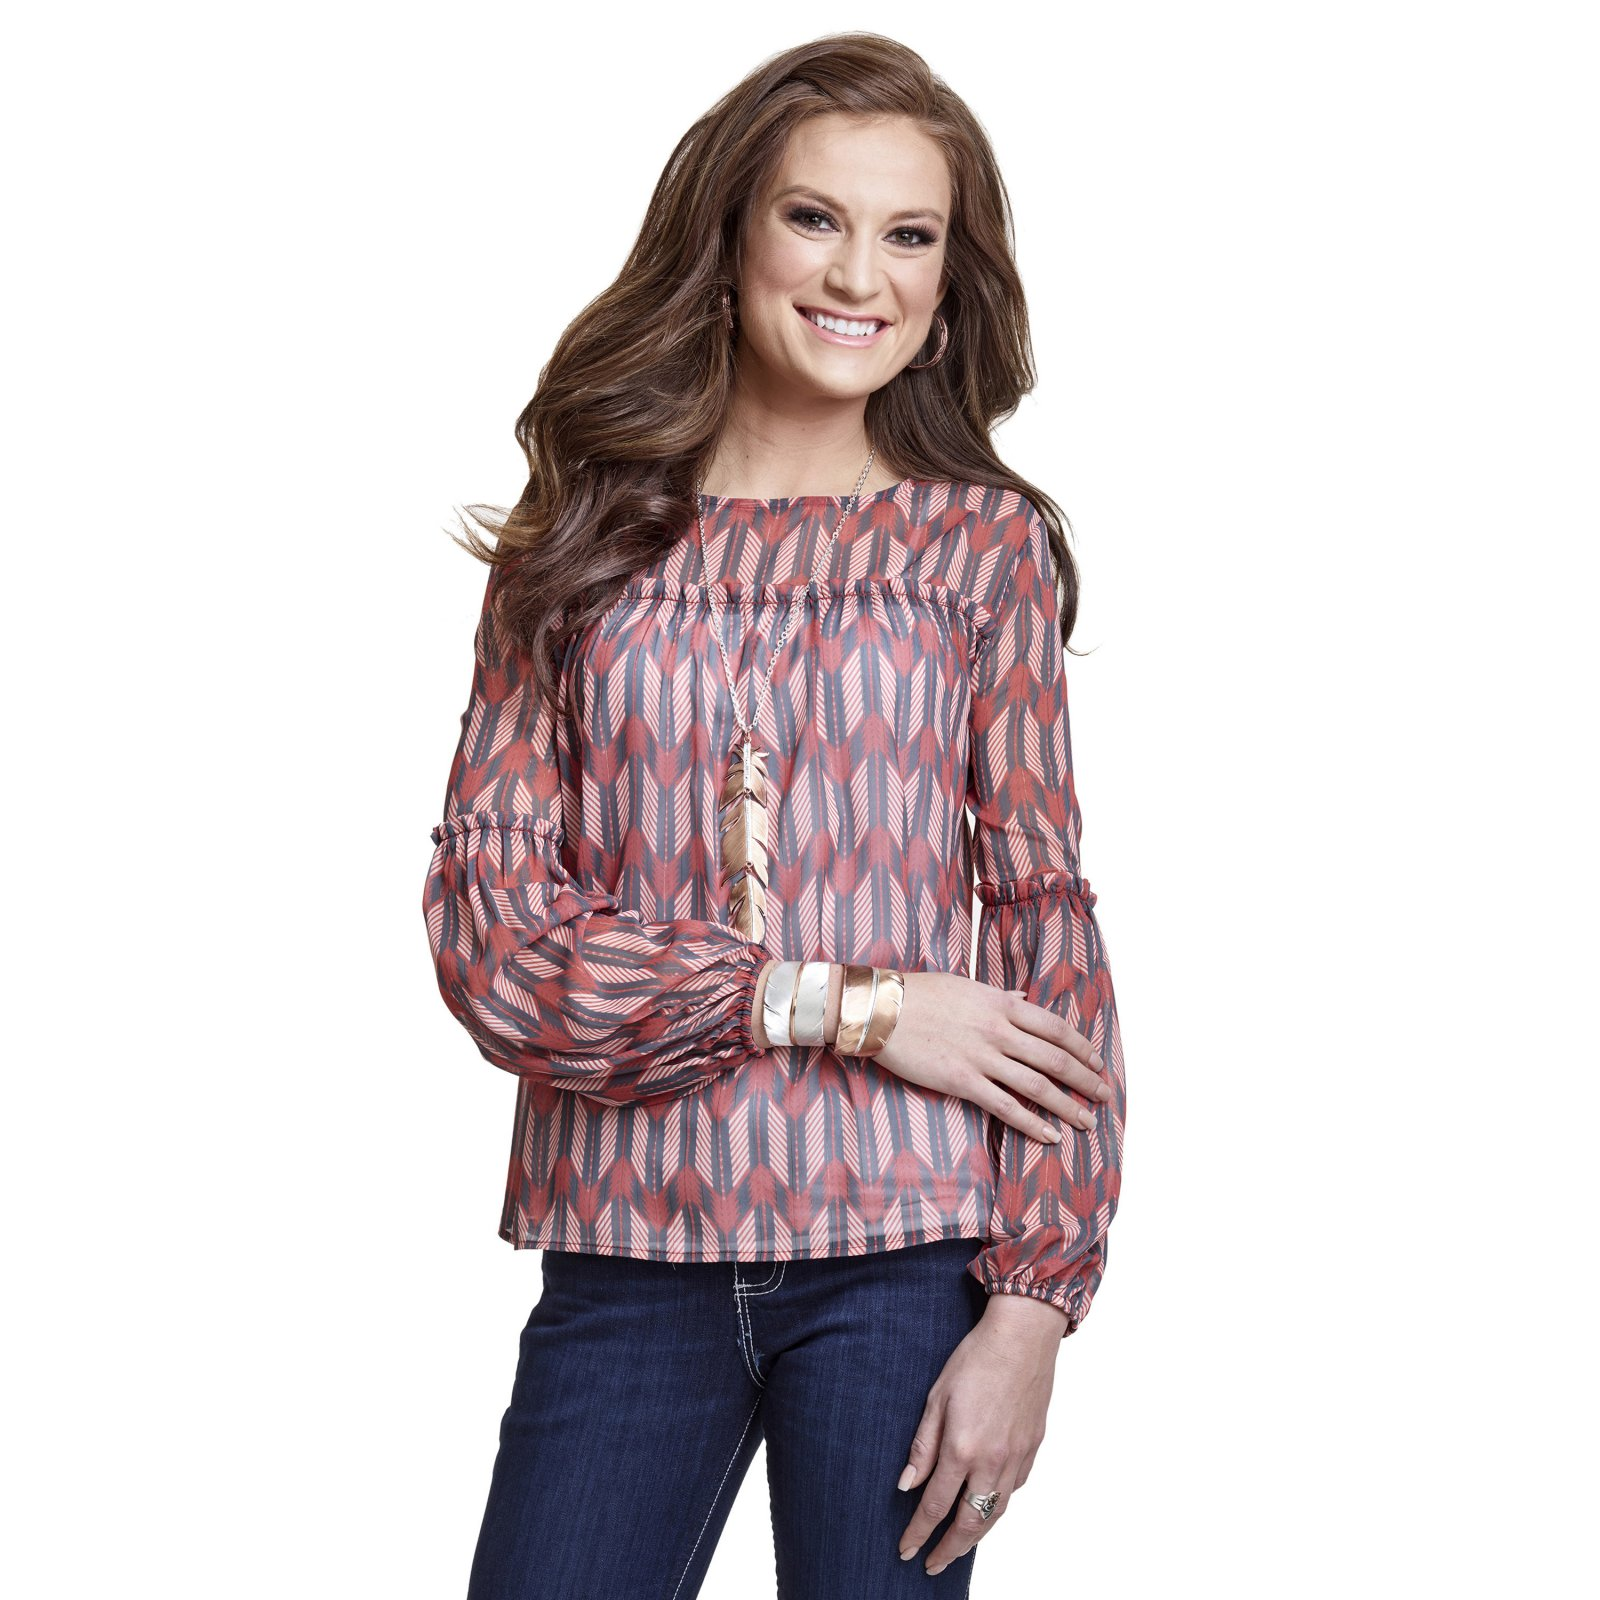 Arrow Print Chiffon Top from Wrangler